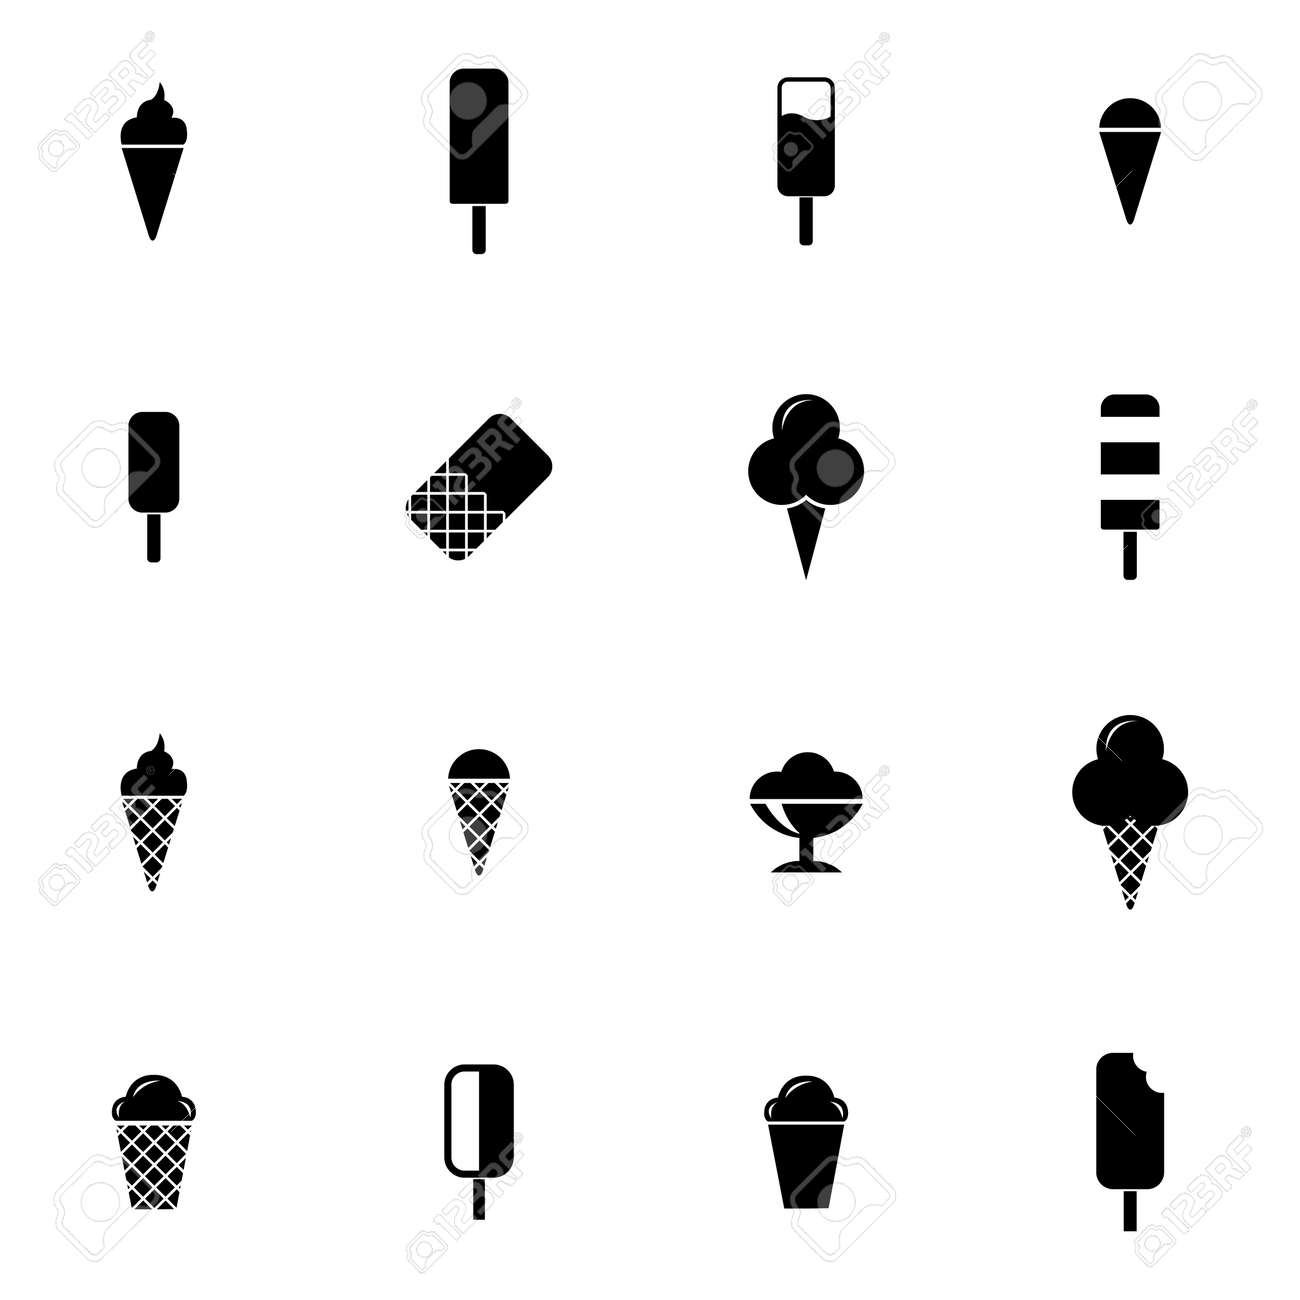 vector black ice cream icons set on white background royalty free cliparts vectors and stock illustration image 27381487 vector black ice cream icons set on white background